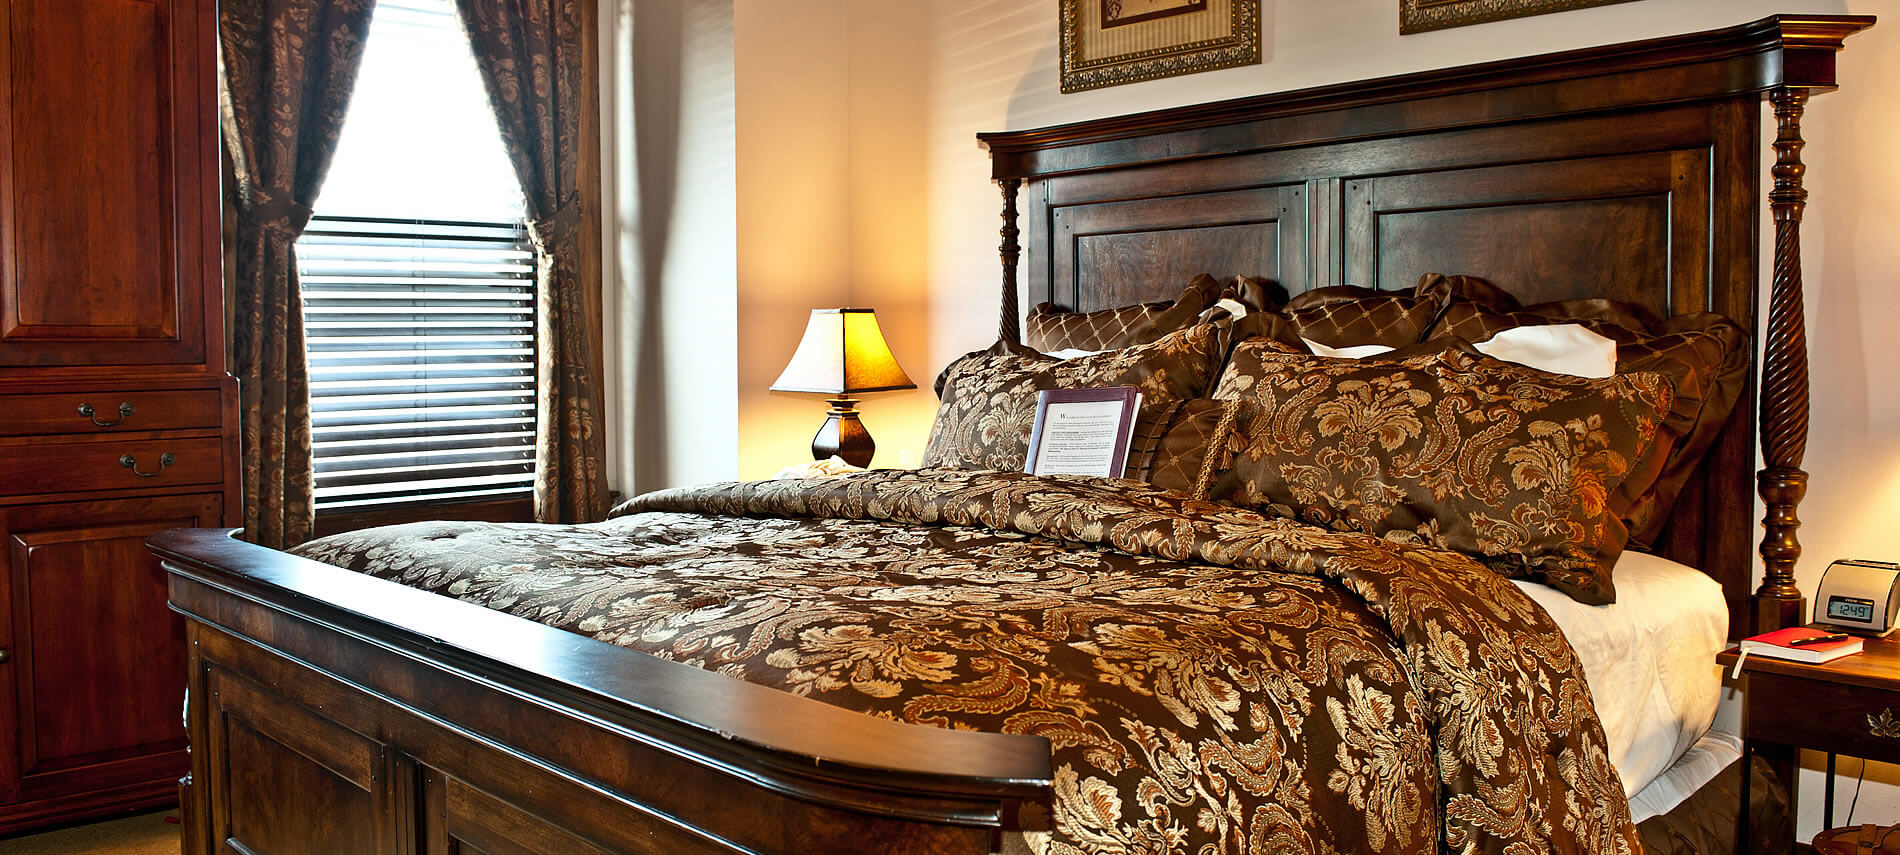 Mahogany wood bed with brown and gold comforter. Brown and gold drapes and mahogany armoire.